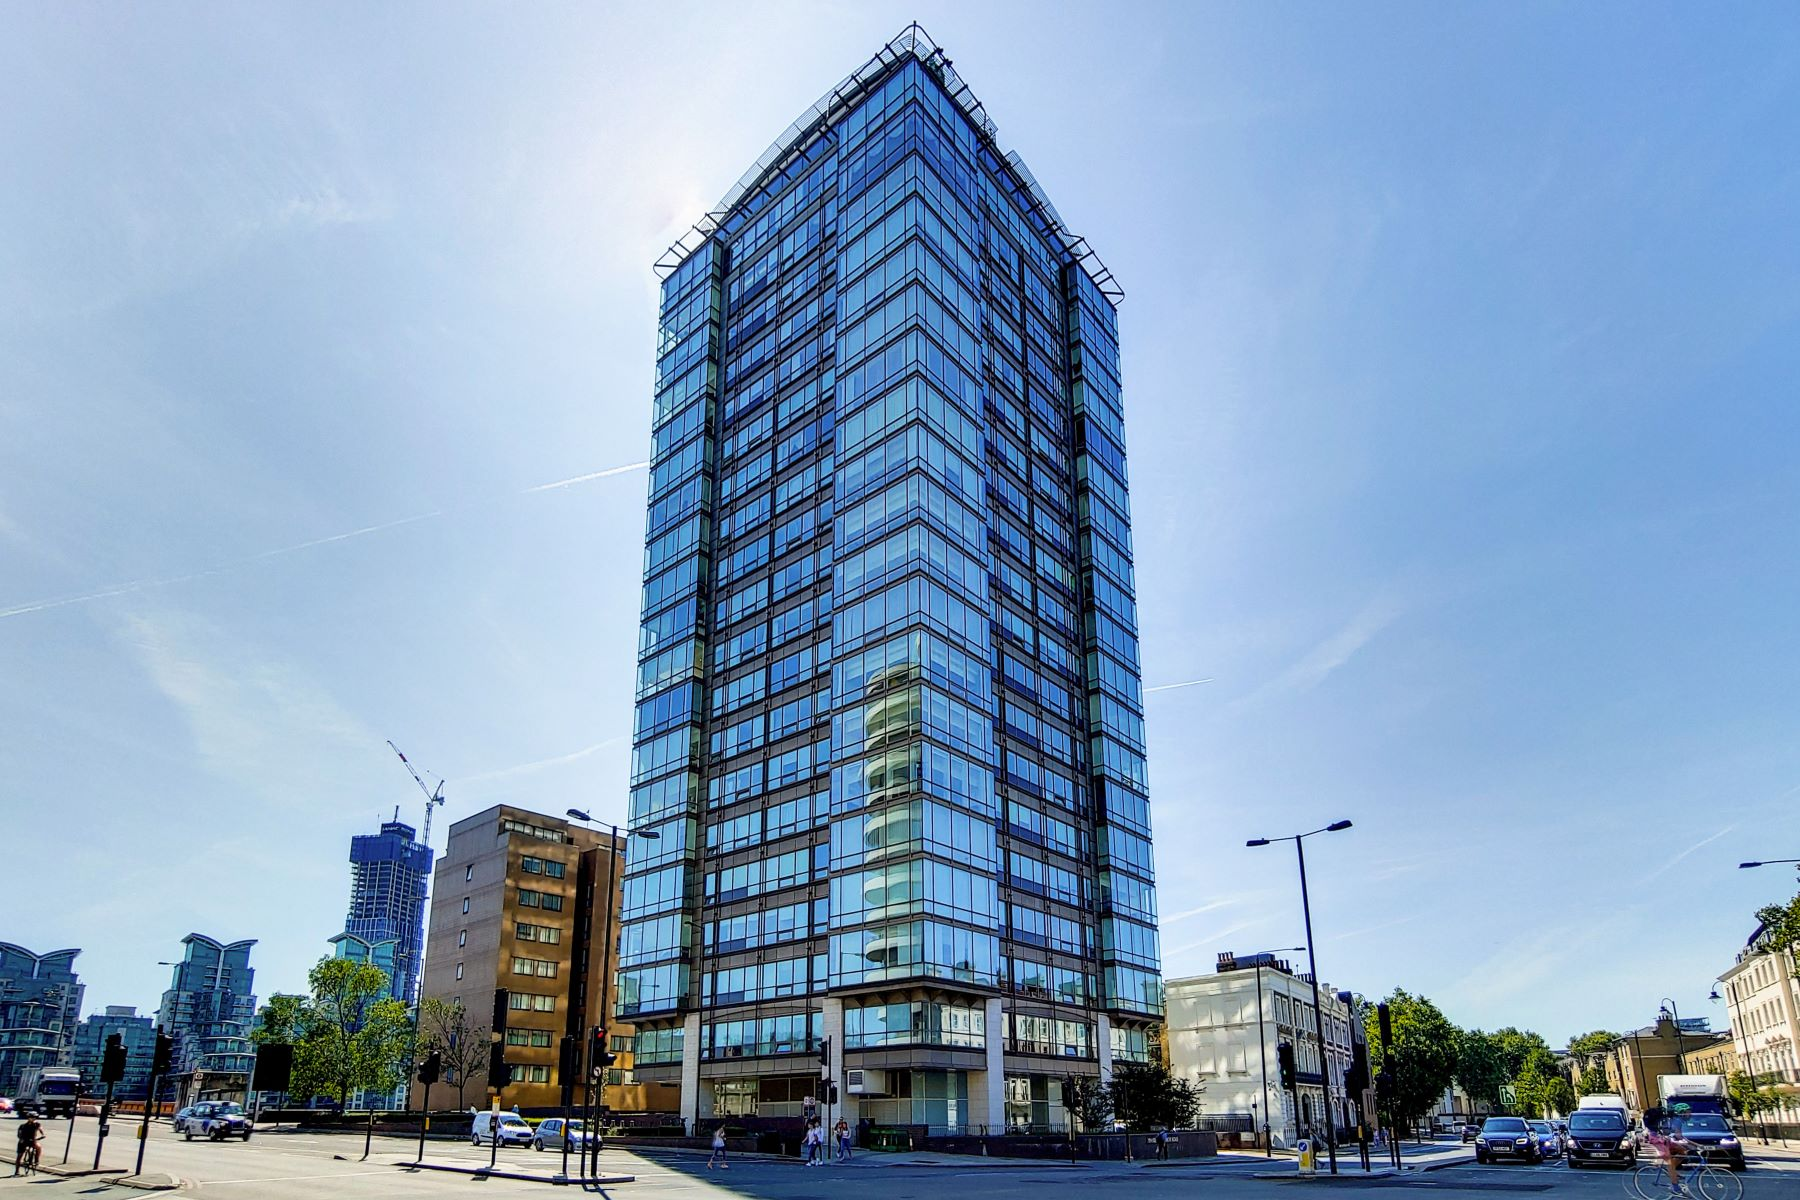 Apartments for Sale at 87-88 The Panoramic 152 Grosvenor Road London, England SW1V 3JL United Kingdom